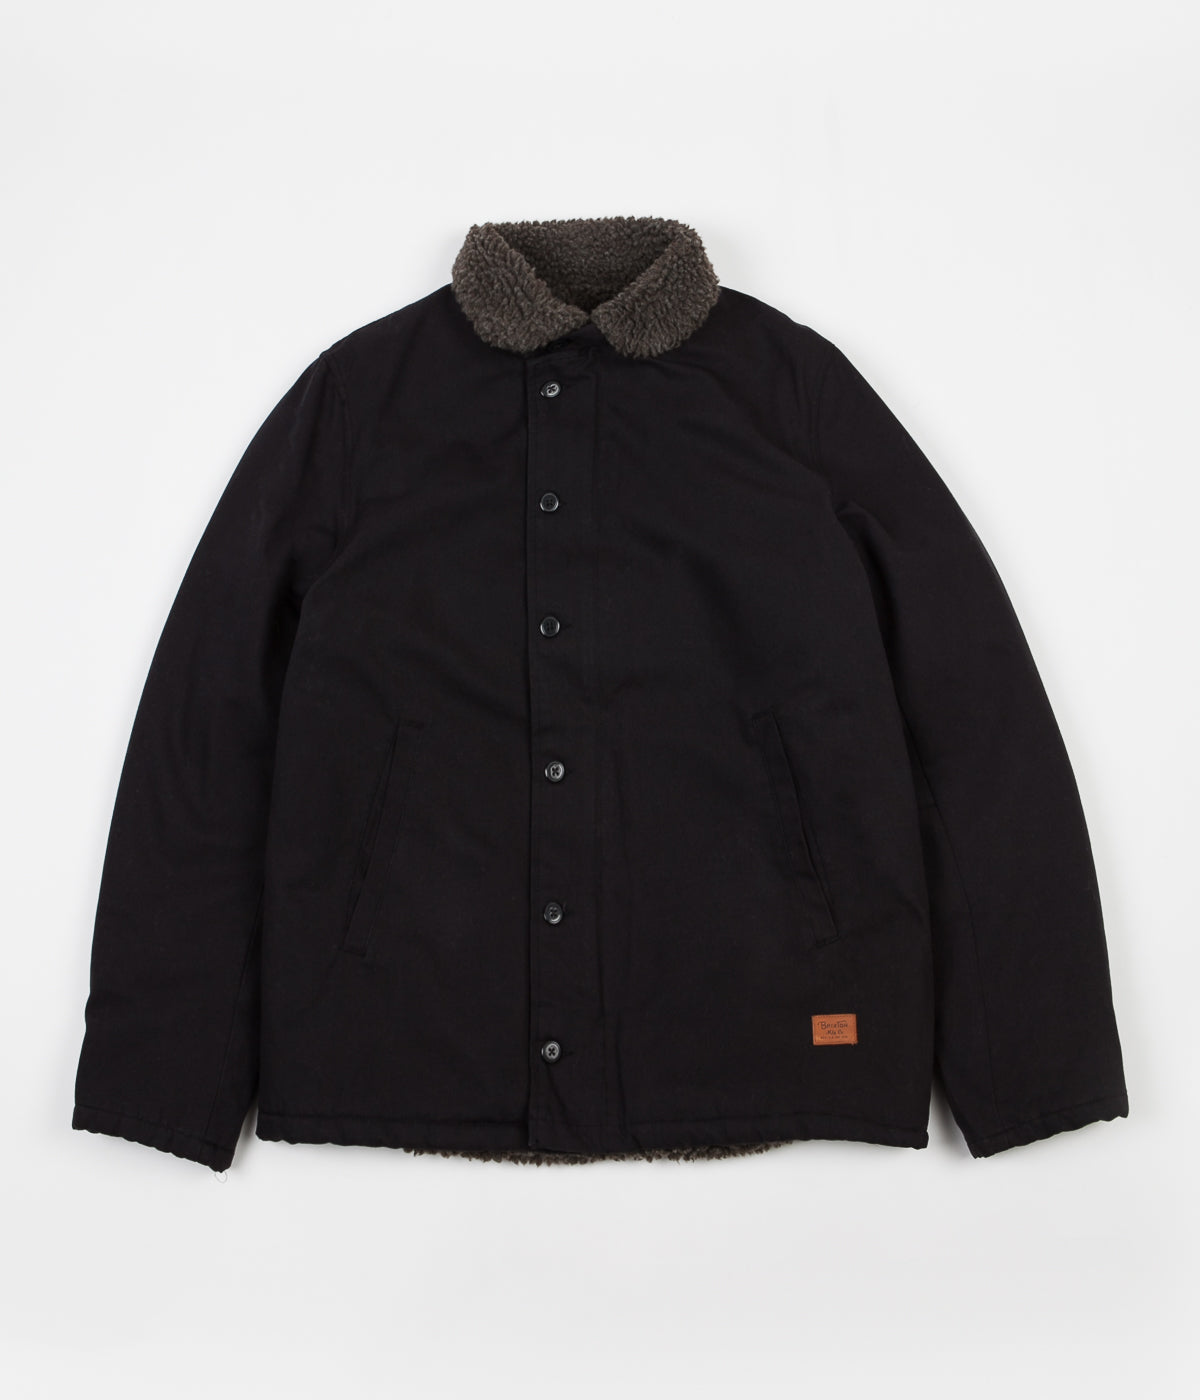 Brixton Mast Jacket - Black   Brown  ea71e3edc86